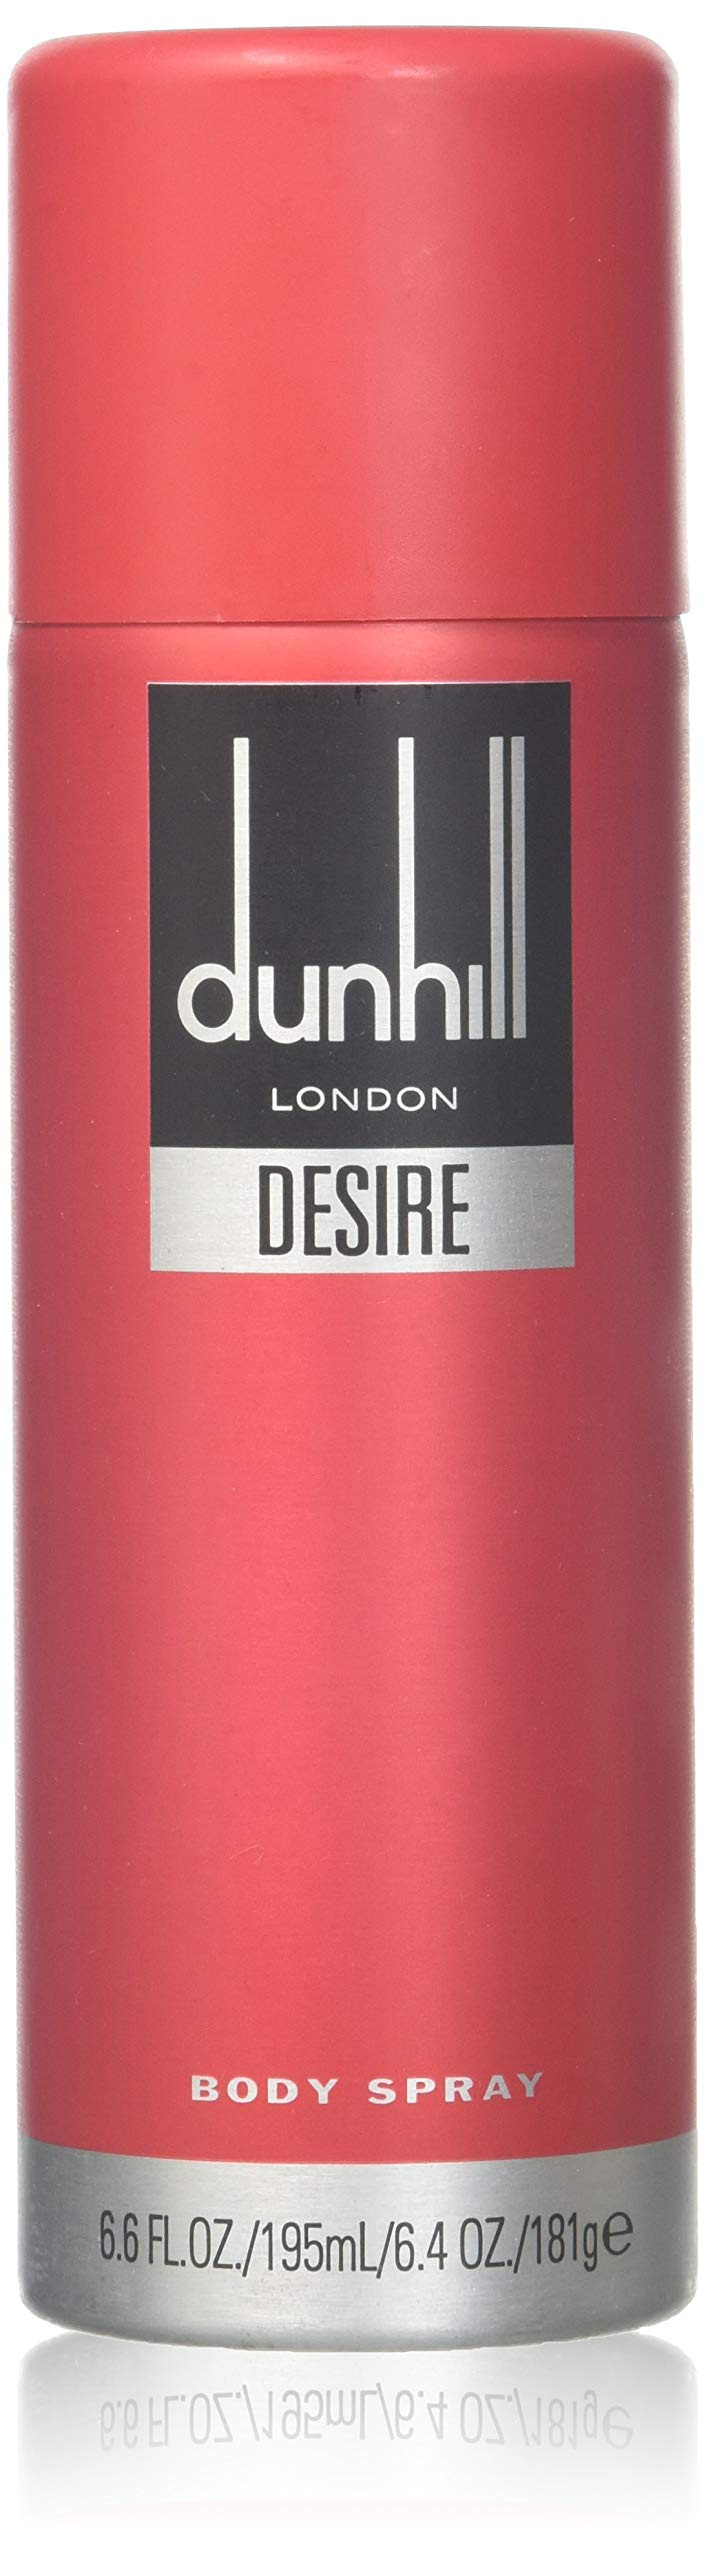 Alfred Dunhill Body Spray for Men, Desire Red, 6.6 Fluid Ounce